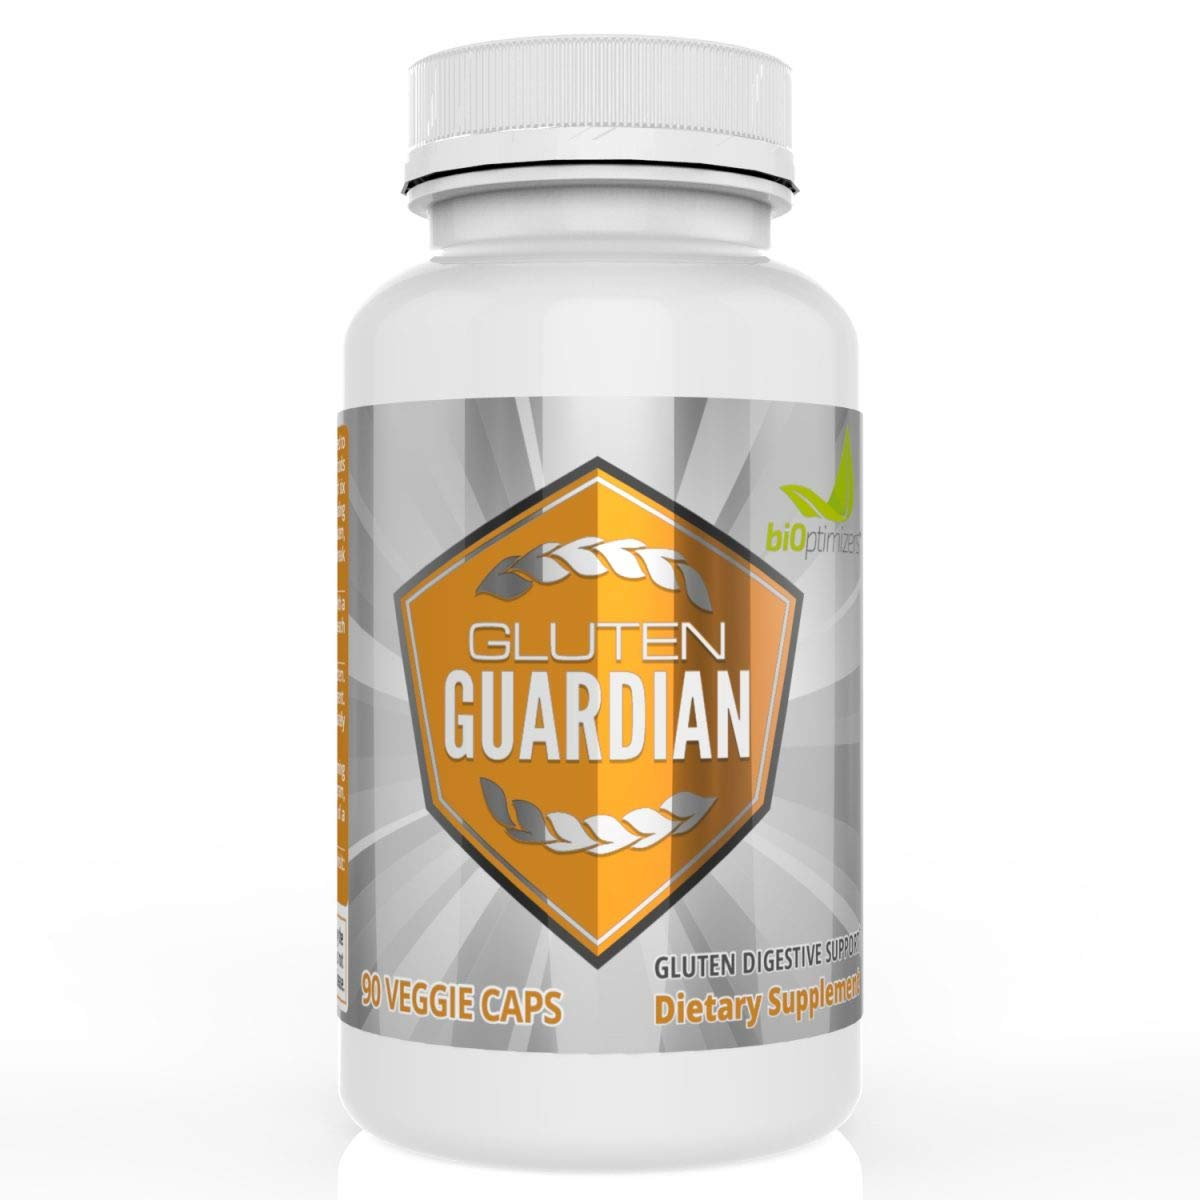 Gluten Guardian - Premium Gluten Digestive Enzymes - Avoid Toxic Gluten Effects - Relief from Occasional Gas, Bloating and Indigestion - No Artificial Ingredients - 90 Capsules